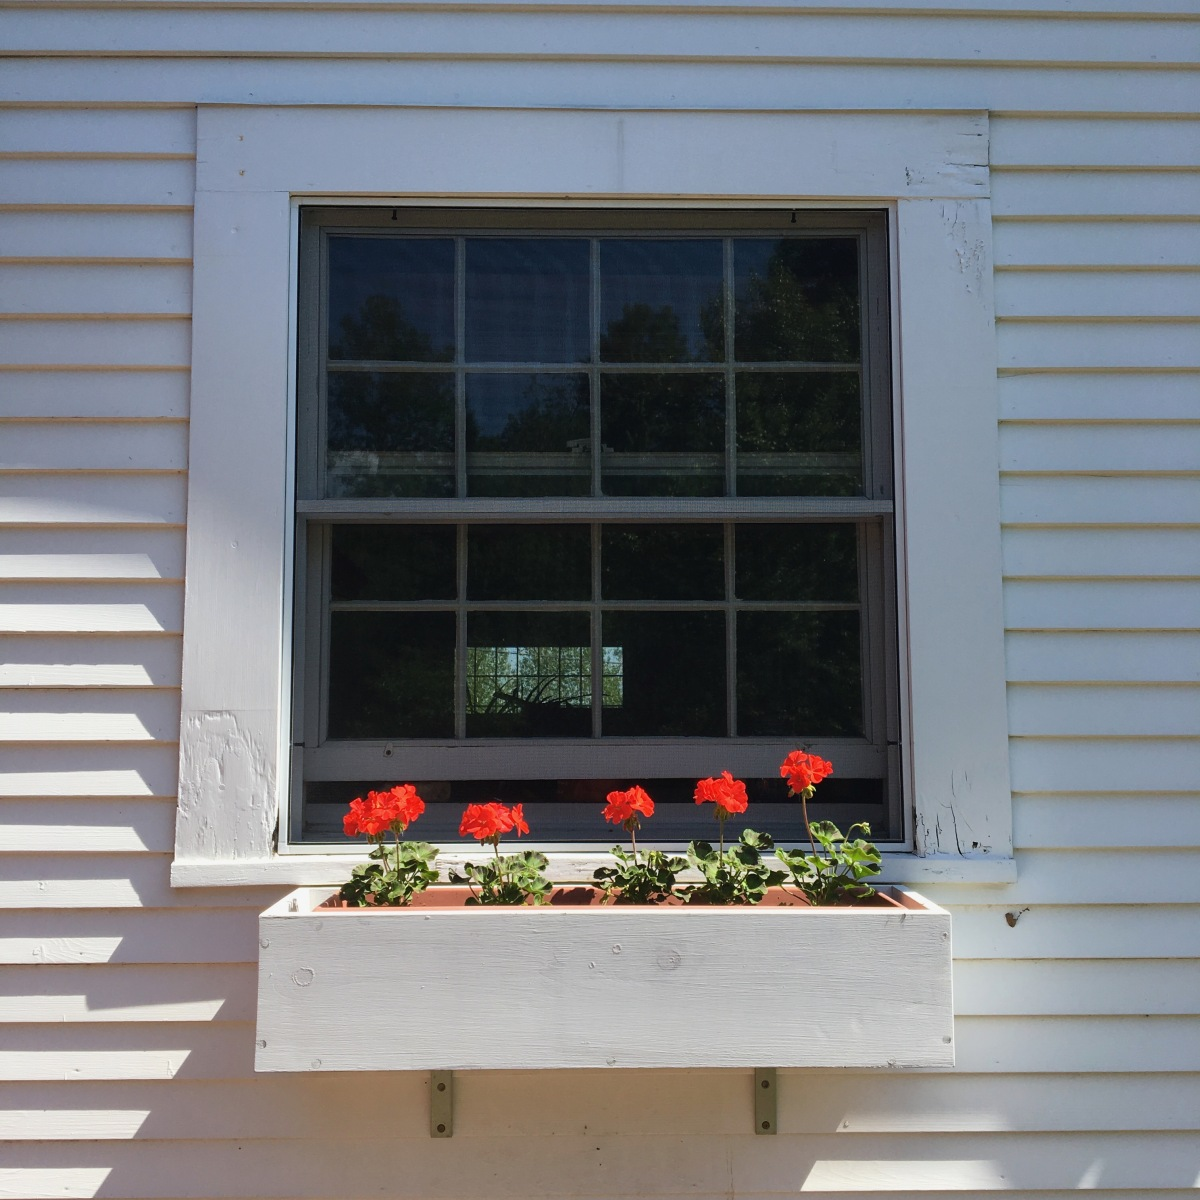 flowers in a windowbox